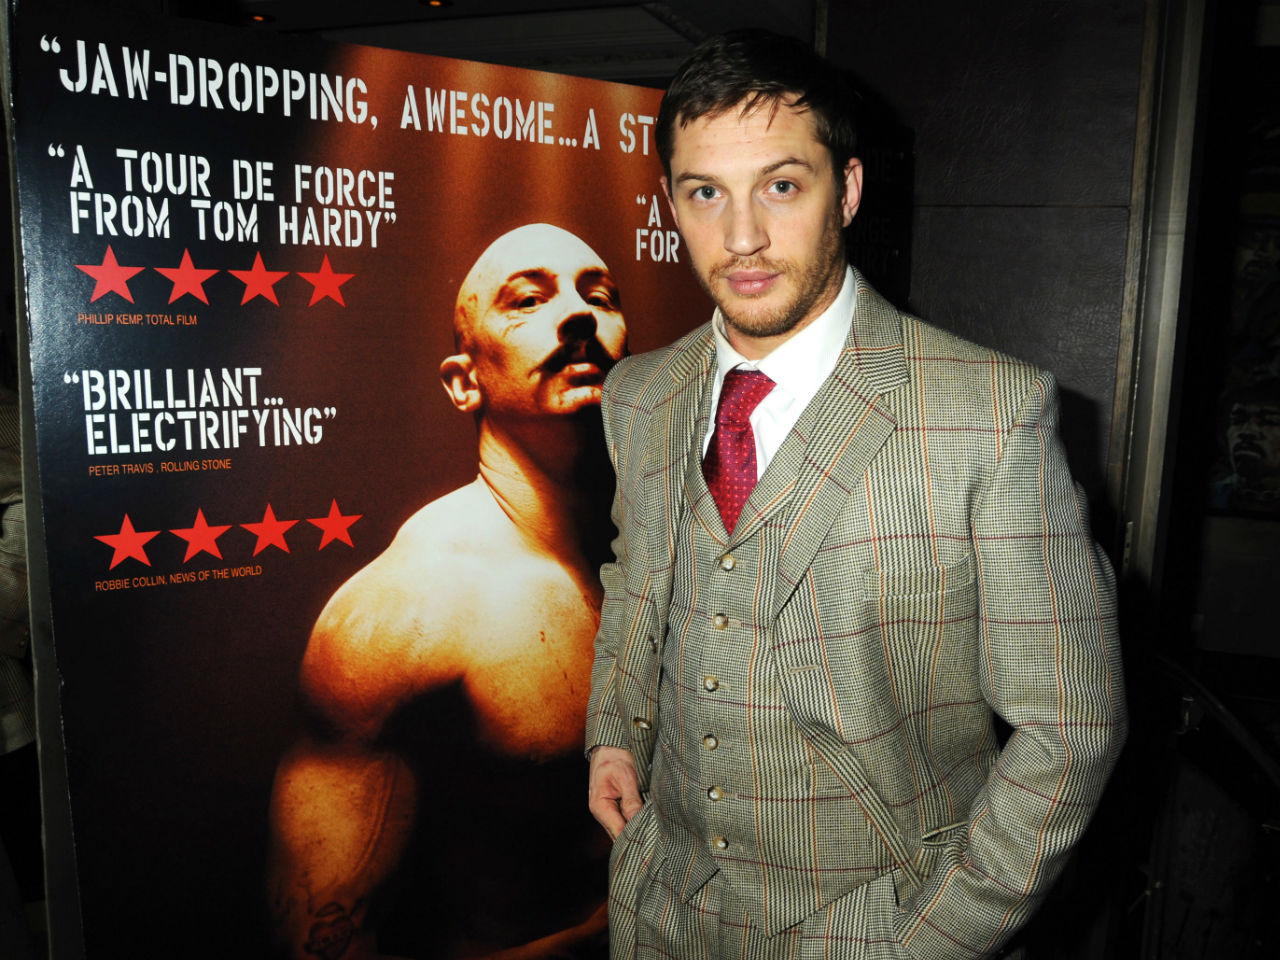 Tom Hardy S Best Body Transformations And Training Plans For His Roles